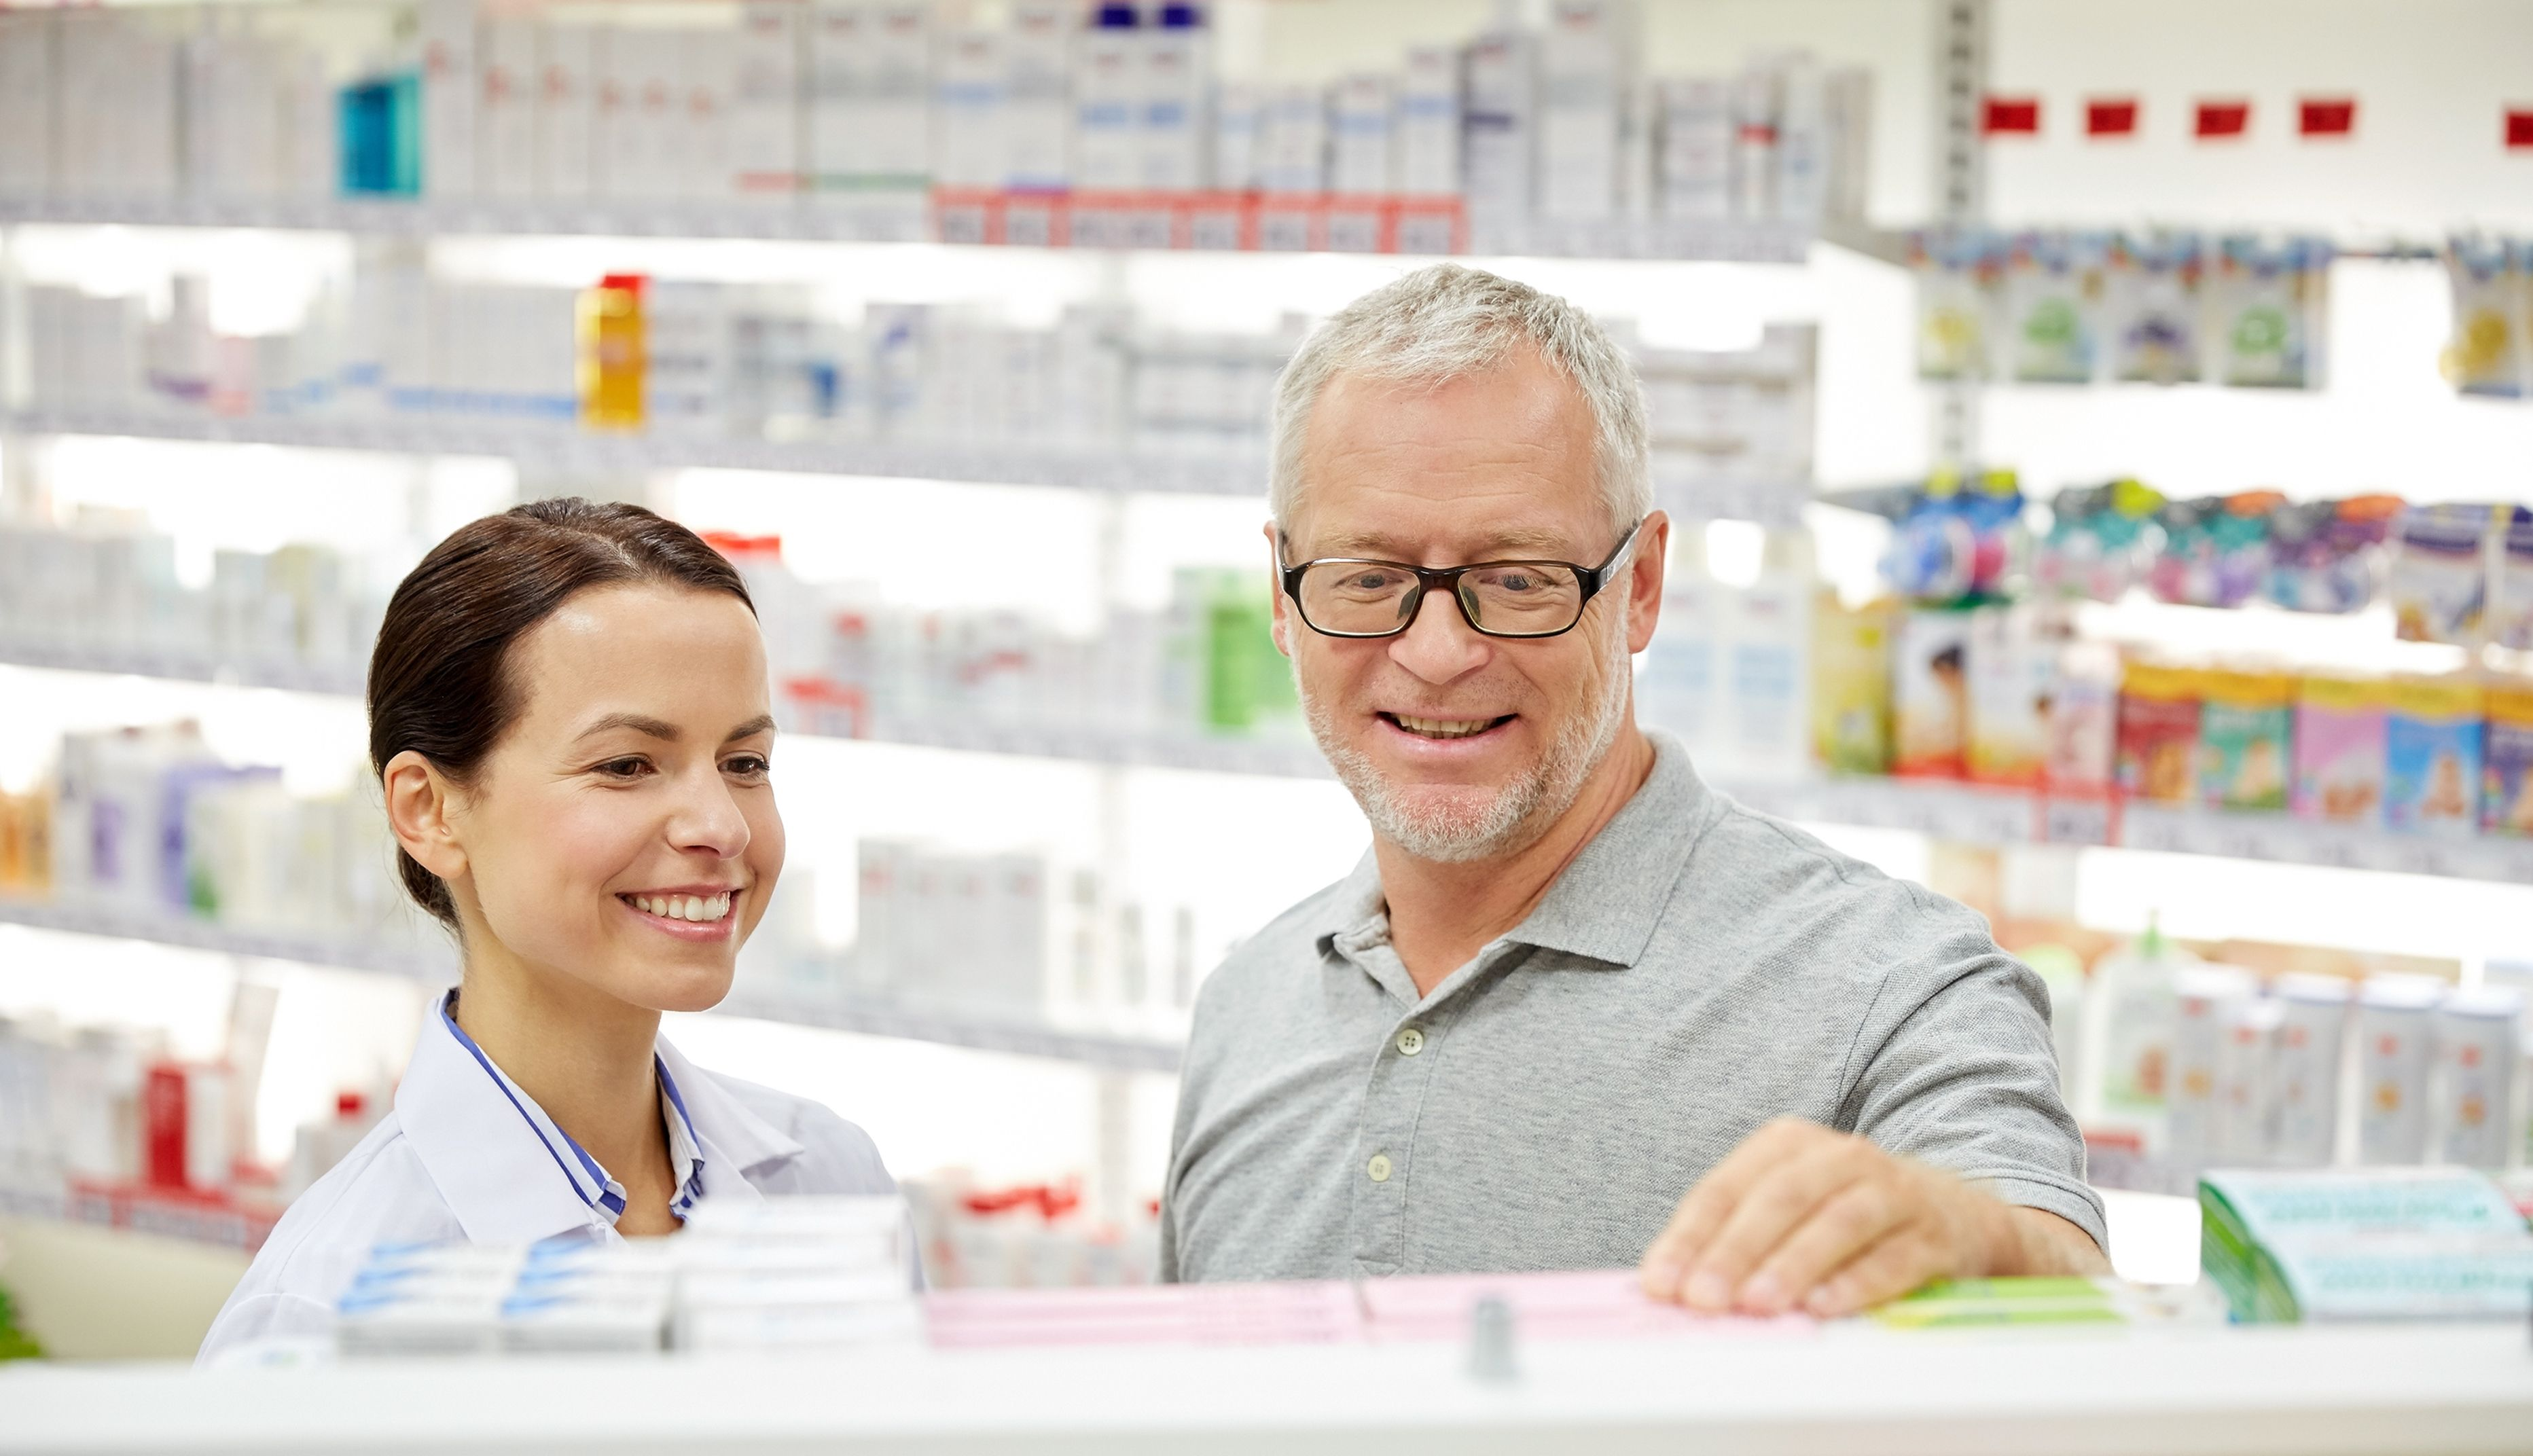 Our expertly trained pharmacists and friendly staff